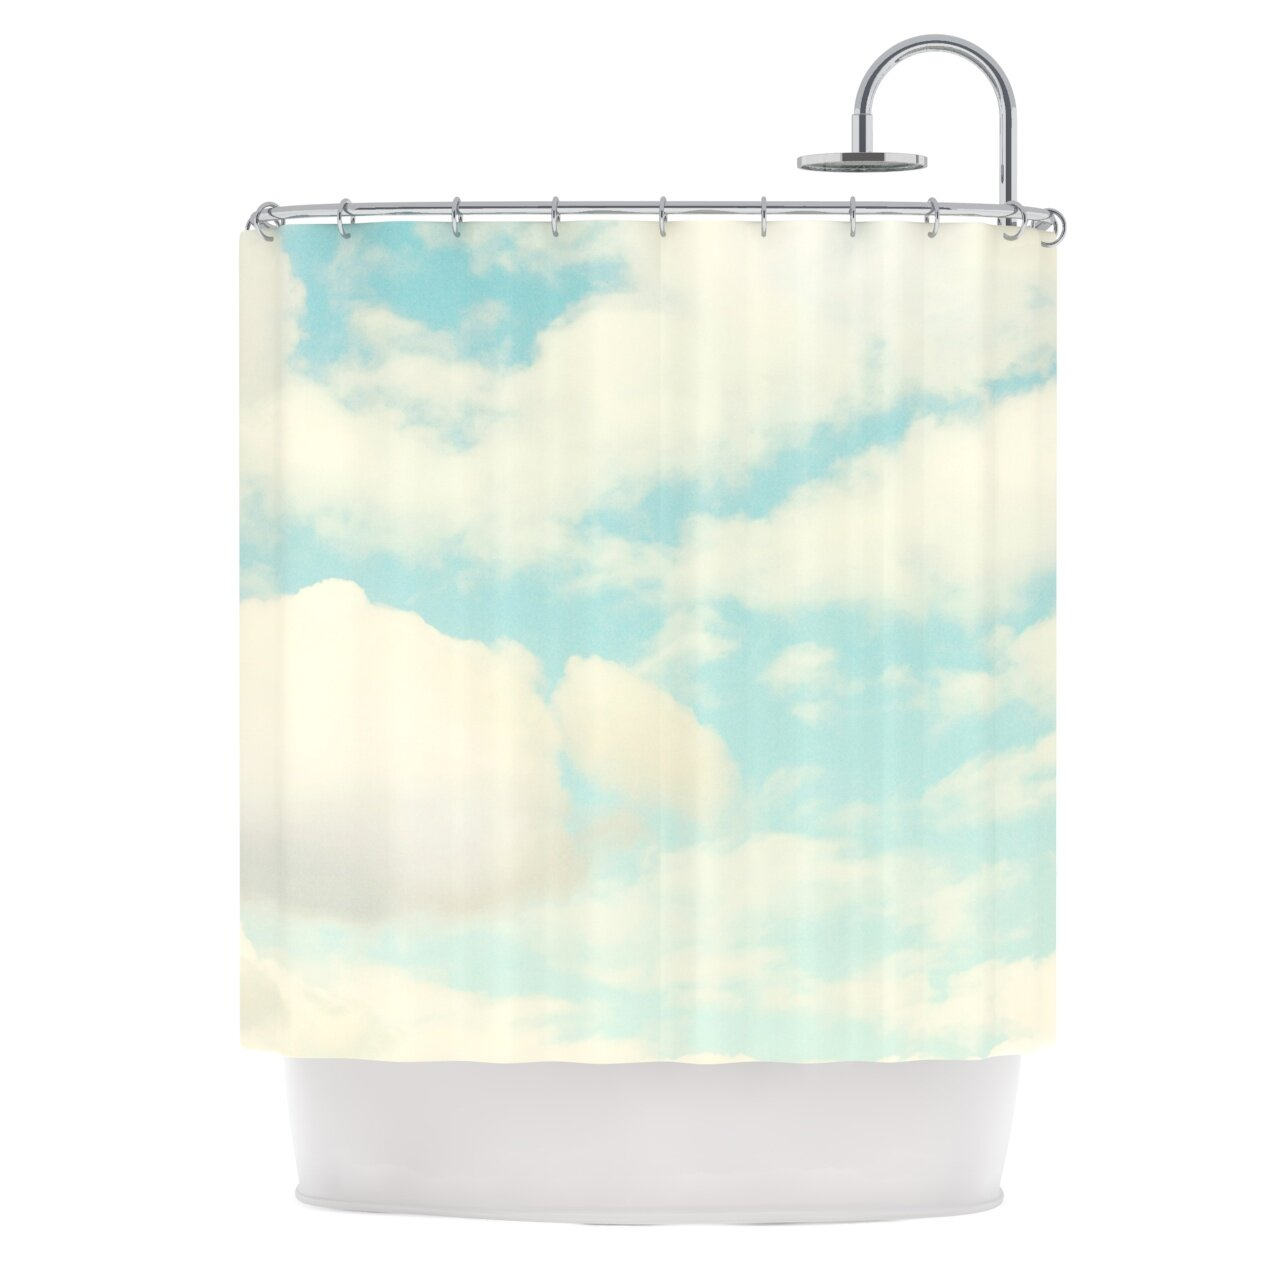 East Urban Home Clouds Shower Curtain